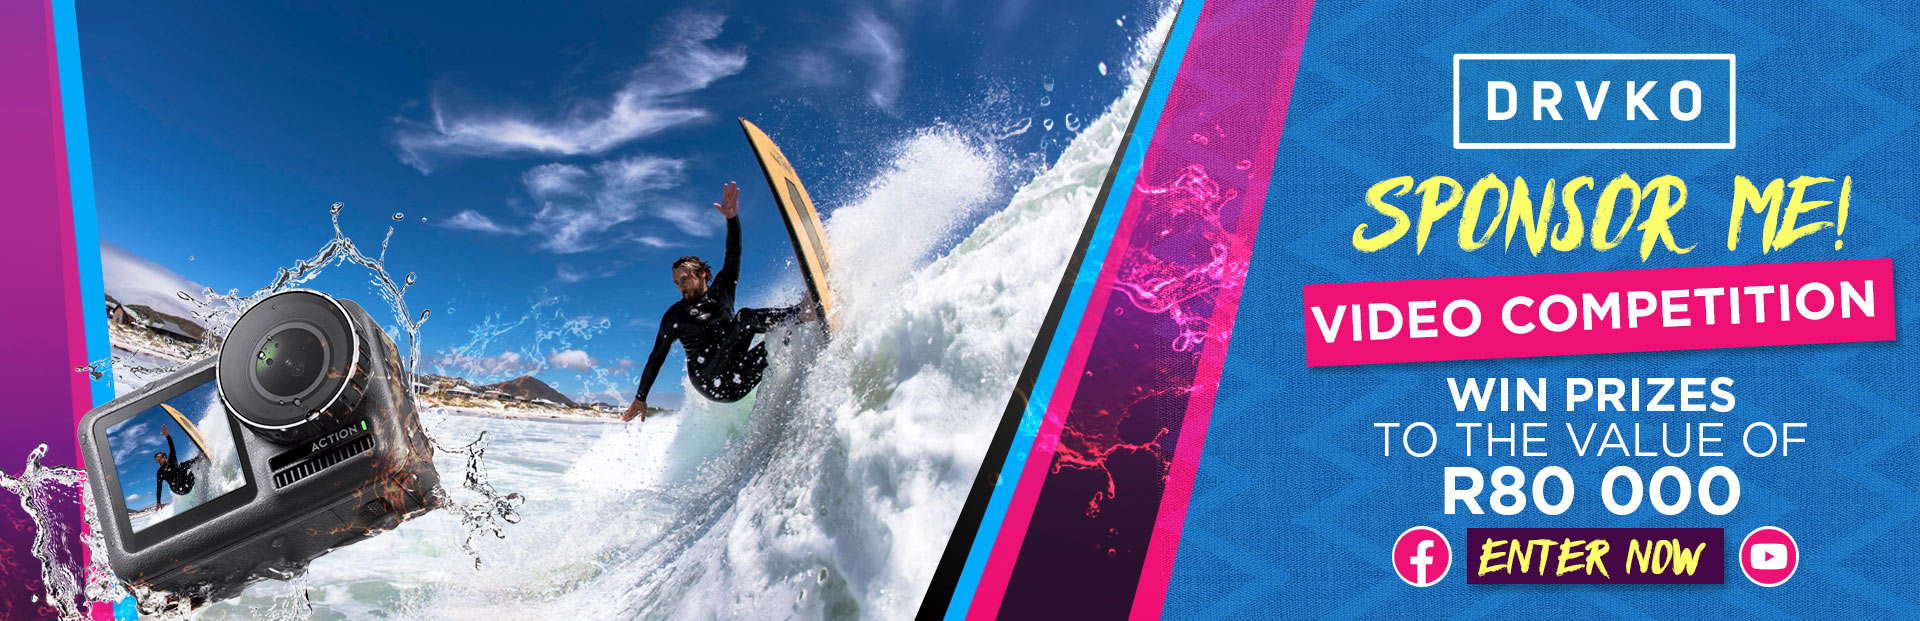 Surf-competition